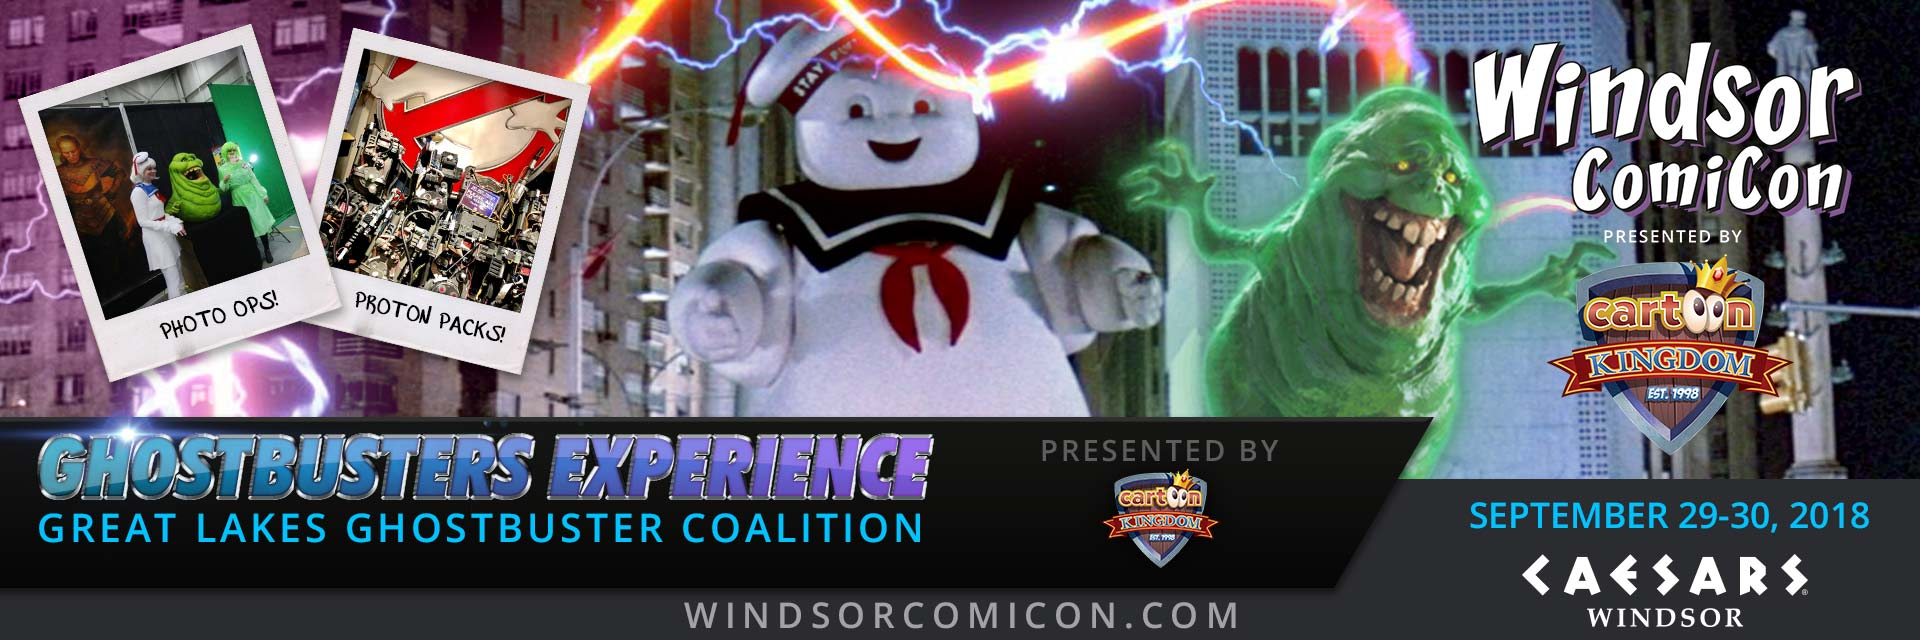 ATTRACTIONS - Windsor ComiCon on product policy, information policy, work policy, payment policy, refund policy, supply policy, shipping policy, sample employee uniform policy, service policy, collection policy, cancel policy, exchange policy, follow policy, termination policy, check out policy, credit policy, request policy, call policy, use policy, rehire policy,